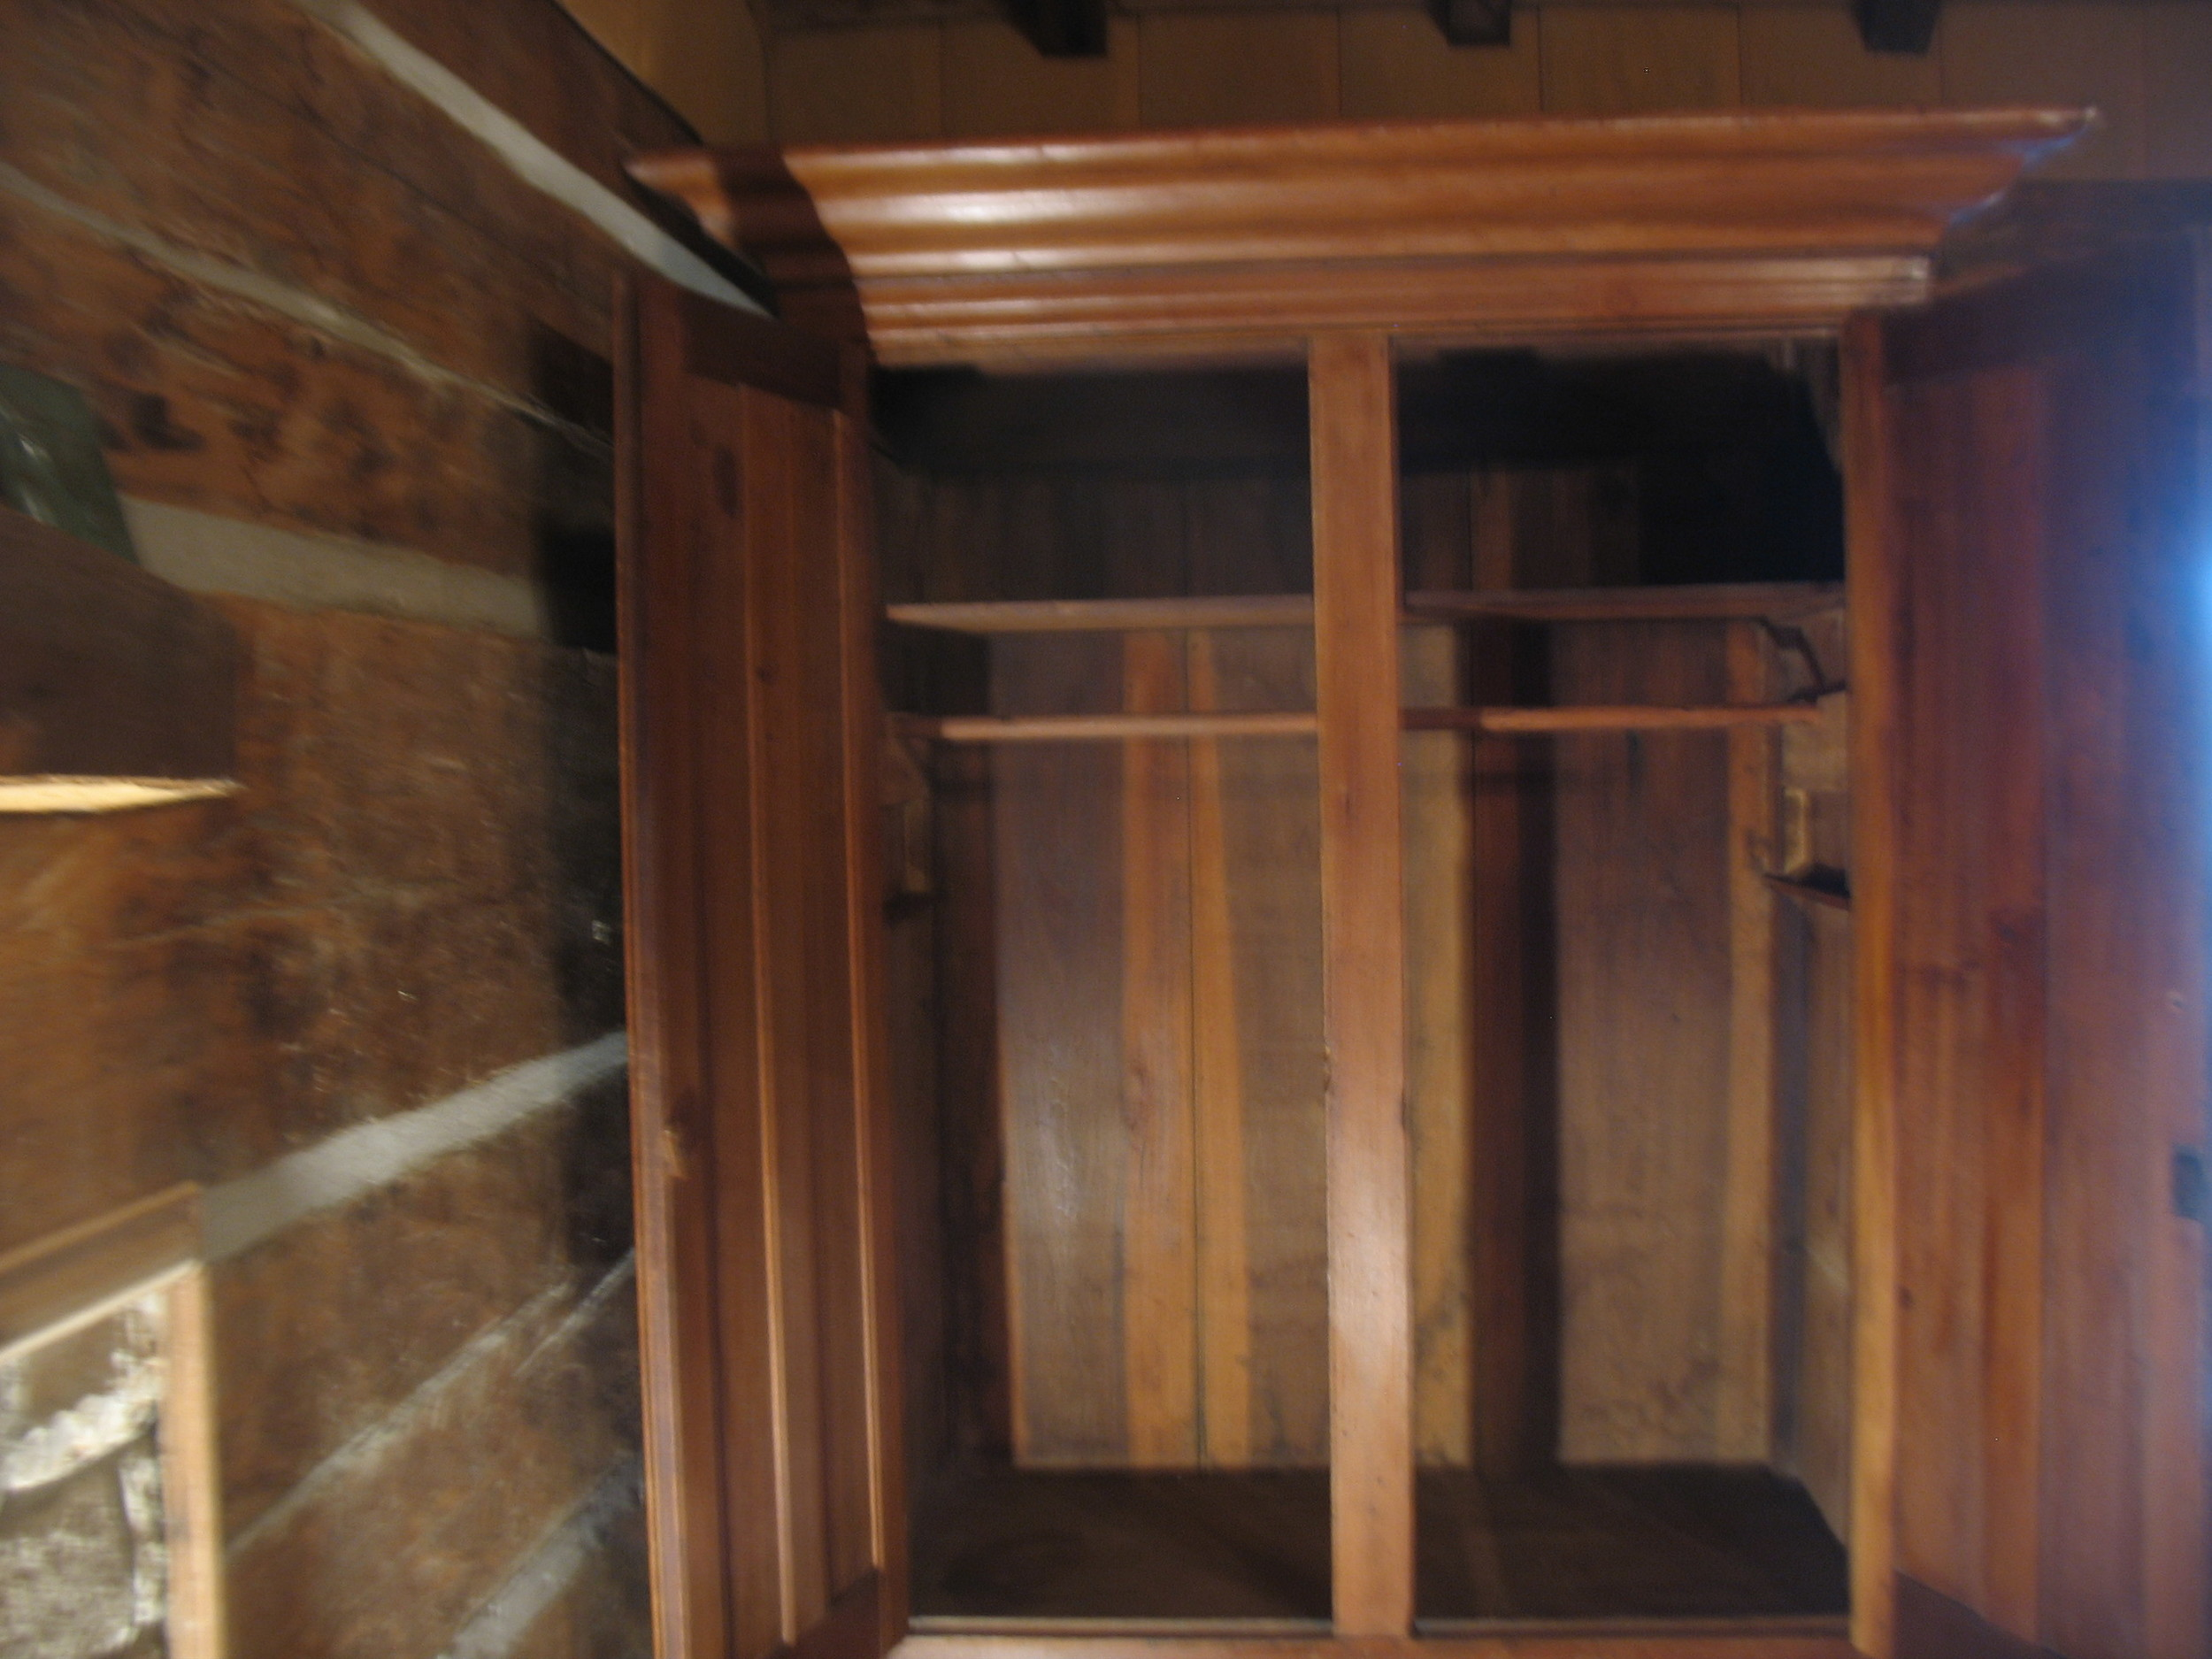 This shows the wardrobe from inside .